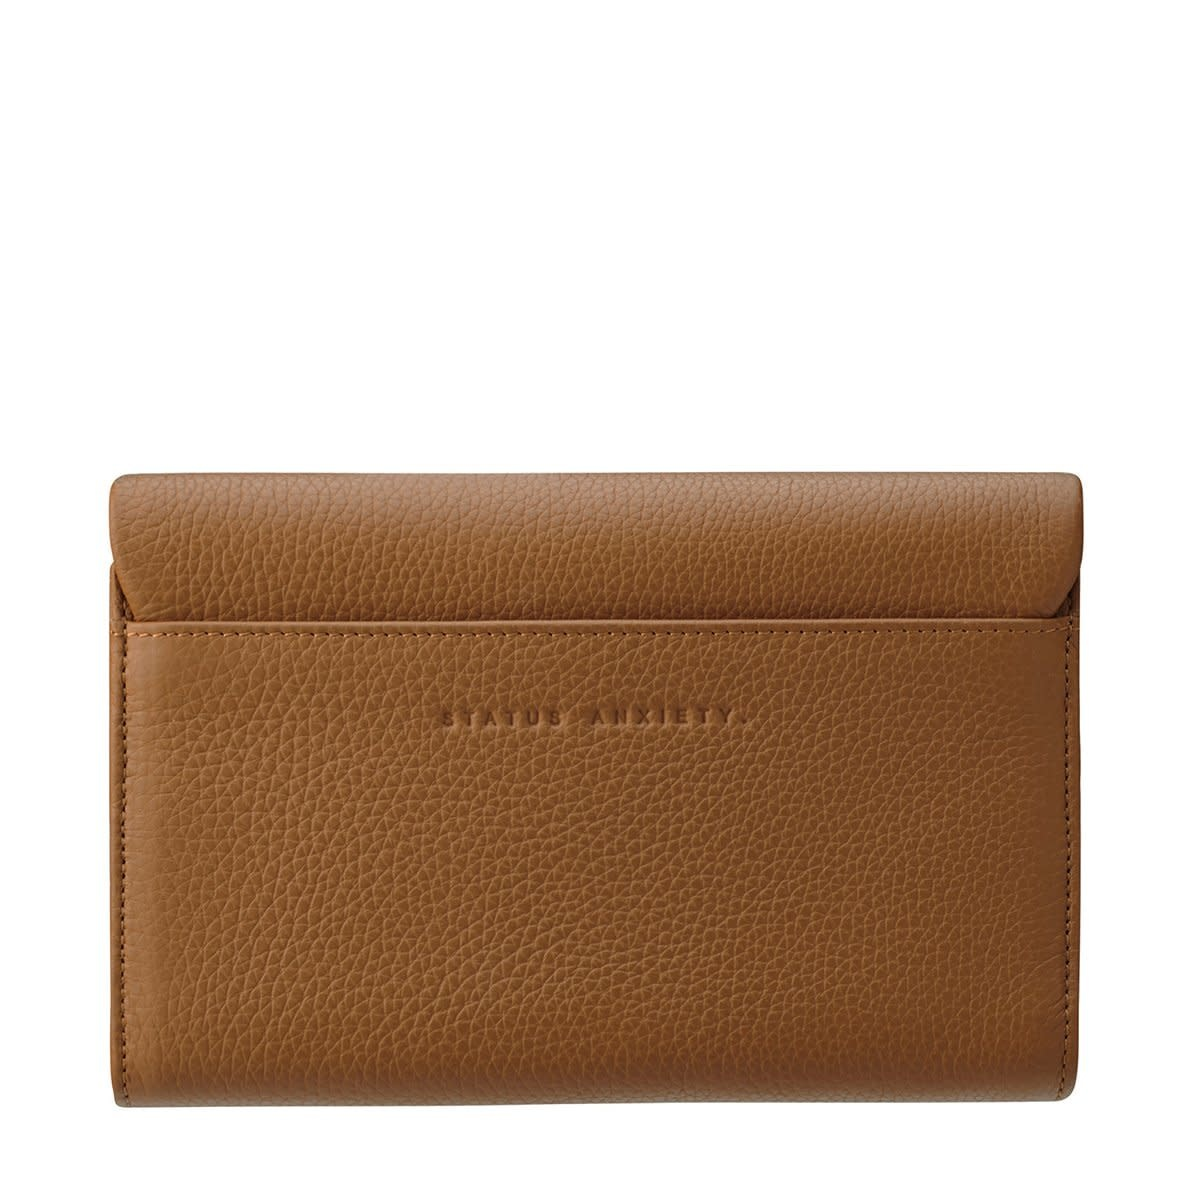 Status Anxiety Remnant Wallet